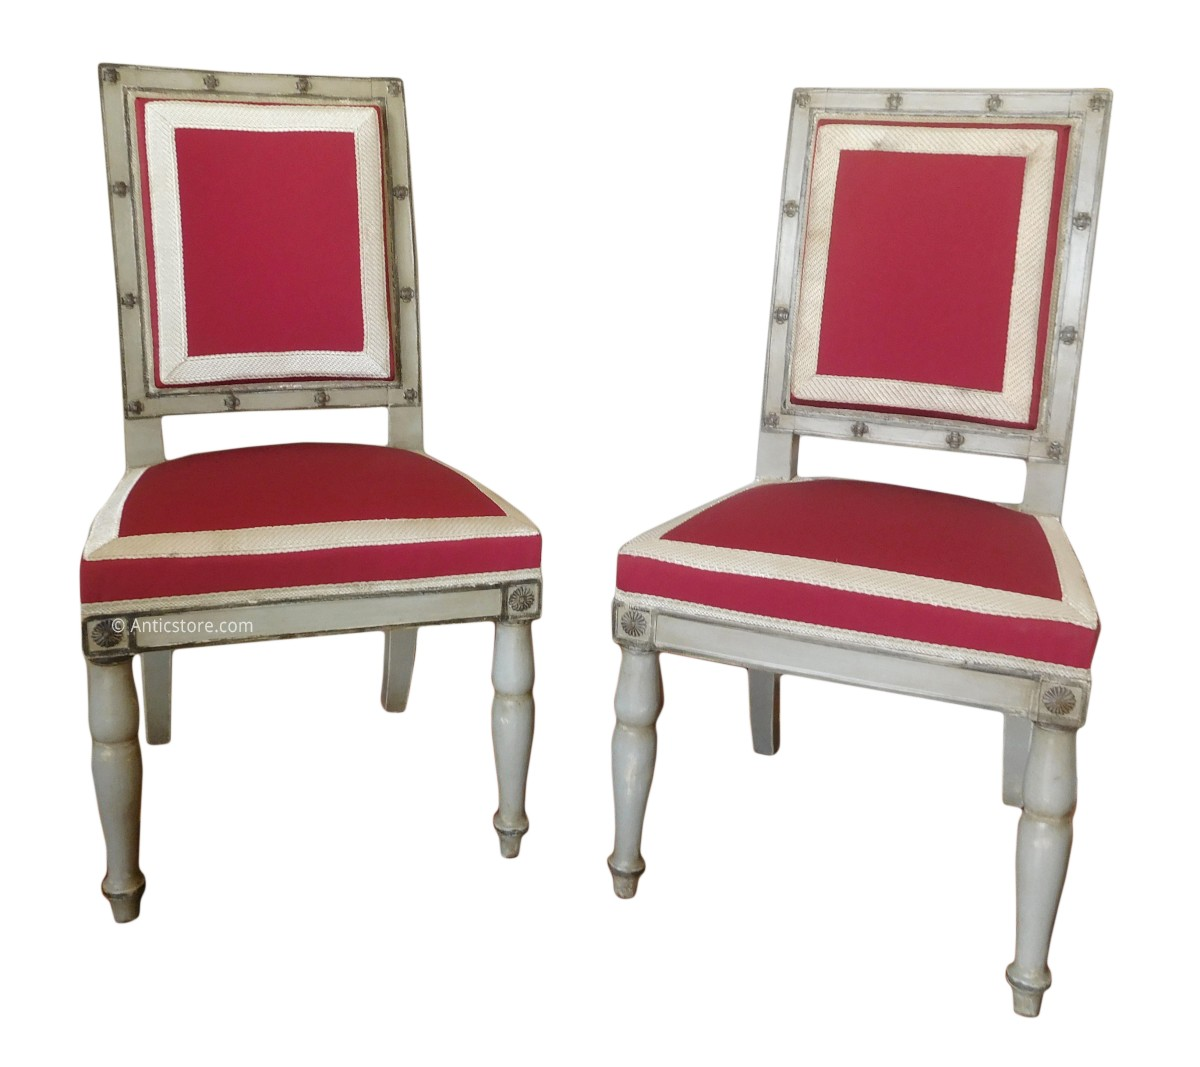 Genial Pair Of Empire Chairs Stamped Jacob Desmalter, Chateau De Fontainebleau